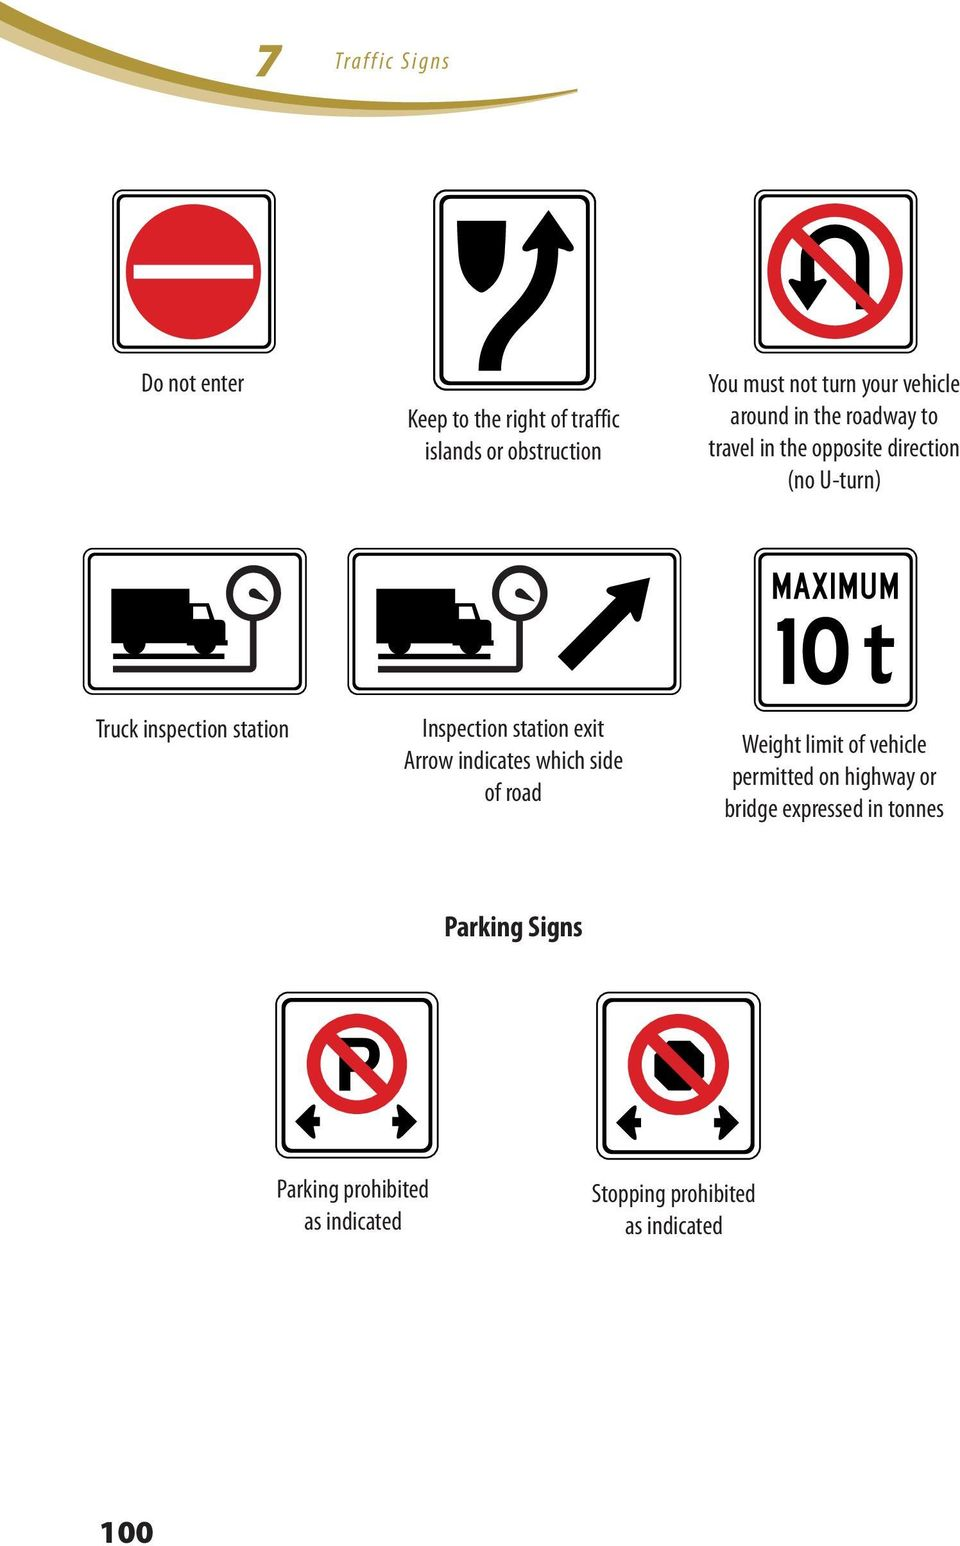 Inspection station exit Arrow indicates which side of road Weight limit of vehicle permitted on highway or